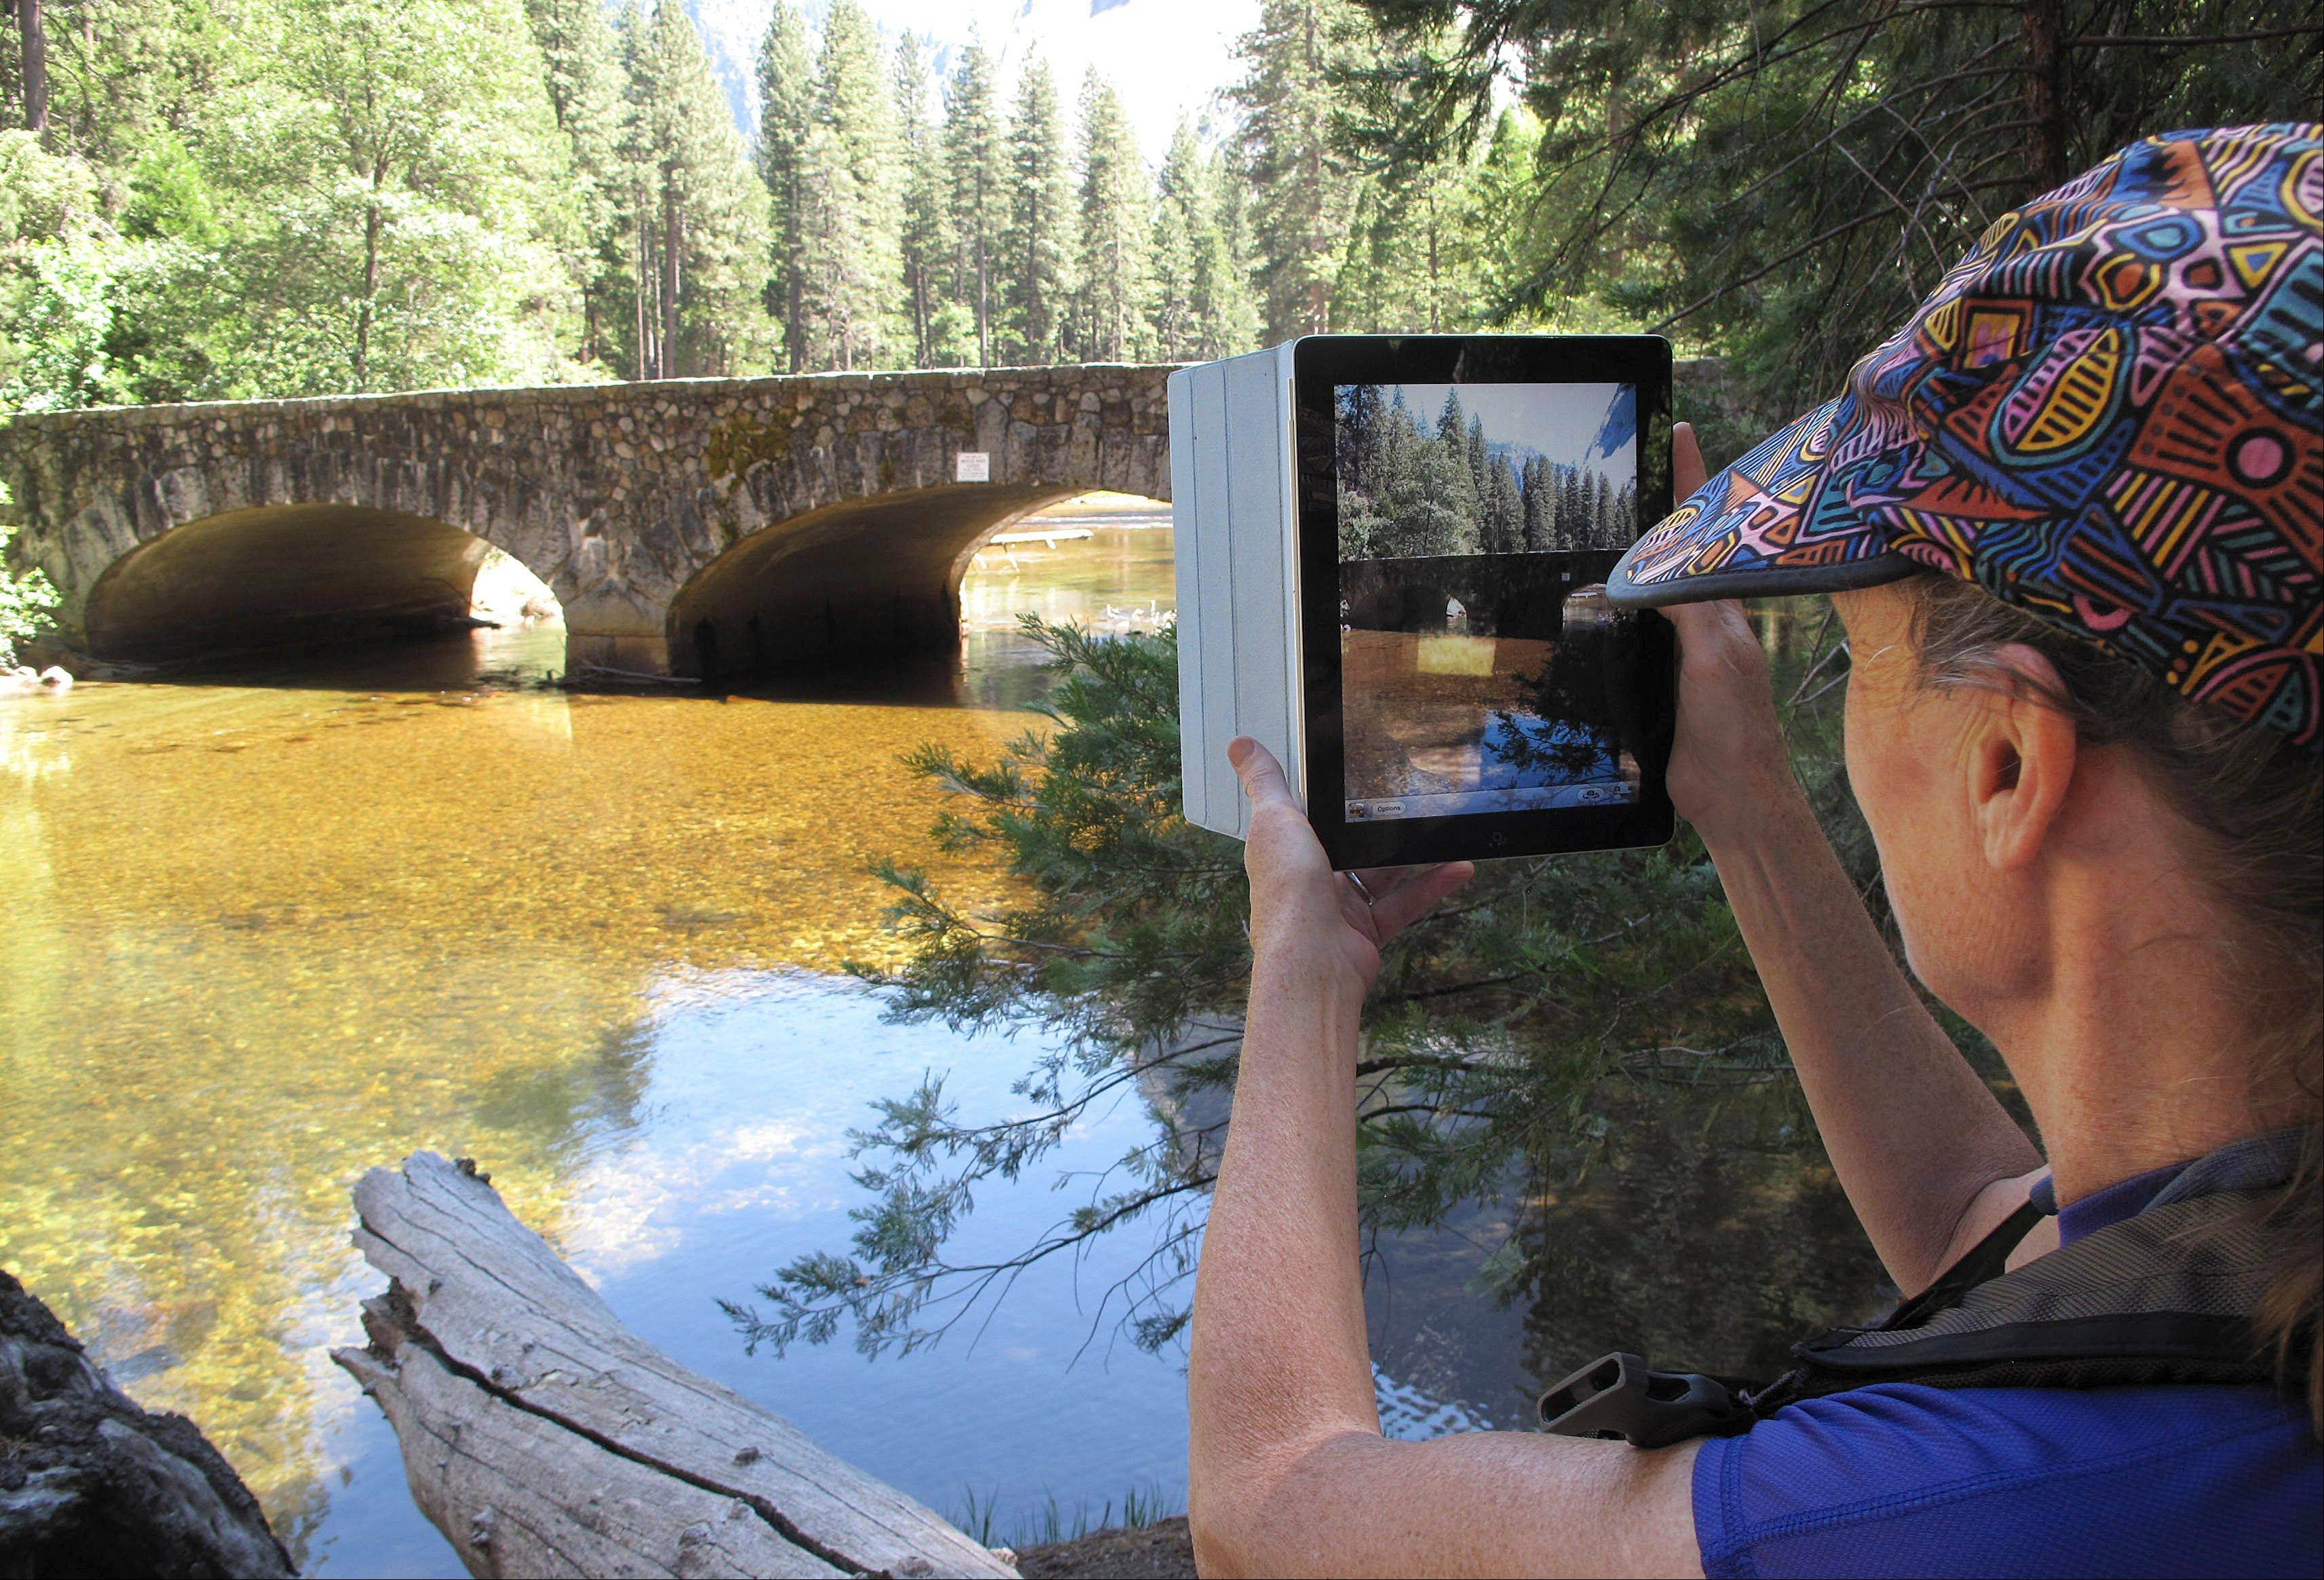 Christa Danielson of Eugene, Ore., stops to take a photo of Ahwahnee Bridge, one of three historic bridges with abutments in the Merced River that could be removed under plans being developed to restore natural flows, in Yosemite Valley, Calif.